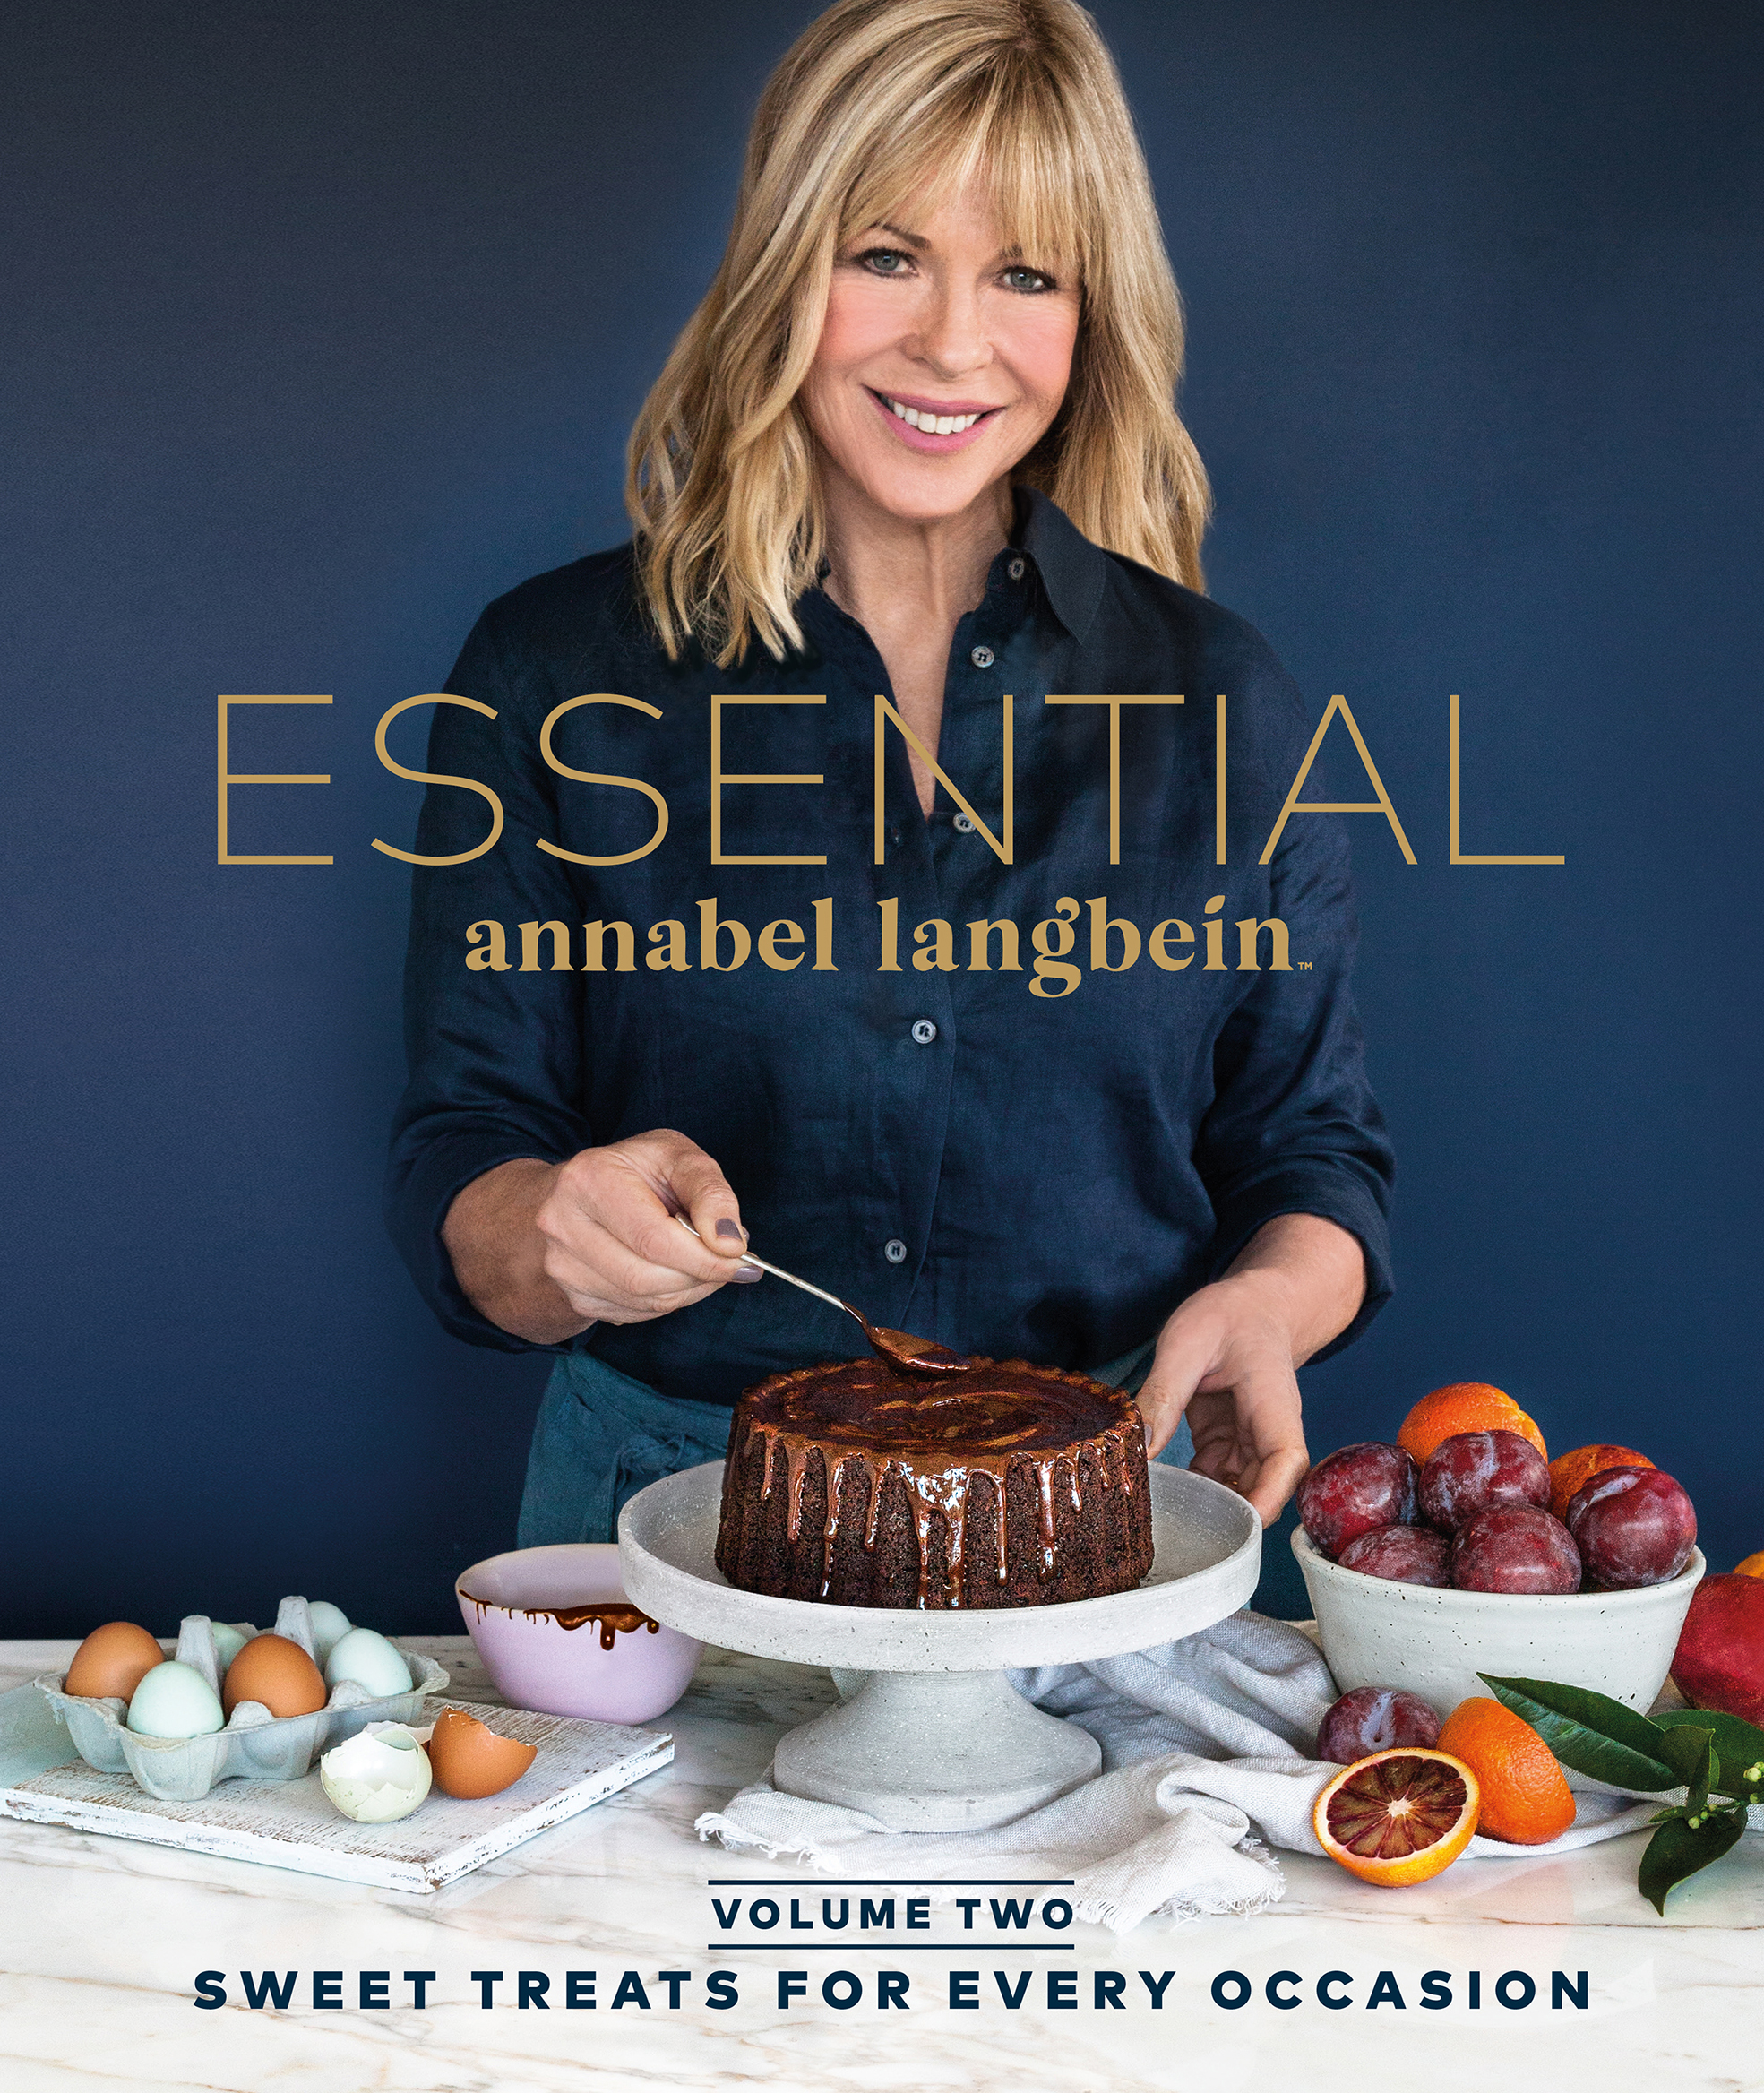 Annabel_Langbein_Essential_VolumeTwo__CoverWithType_print.jpg